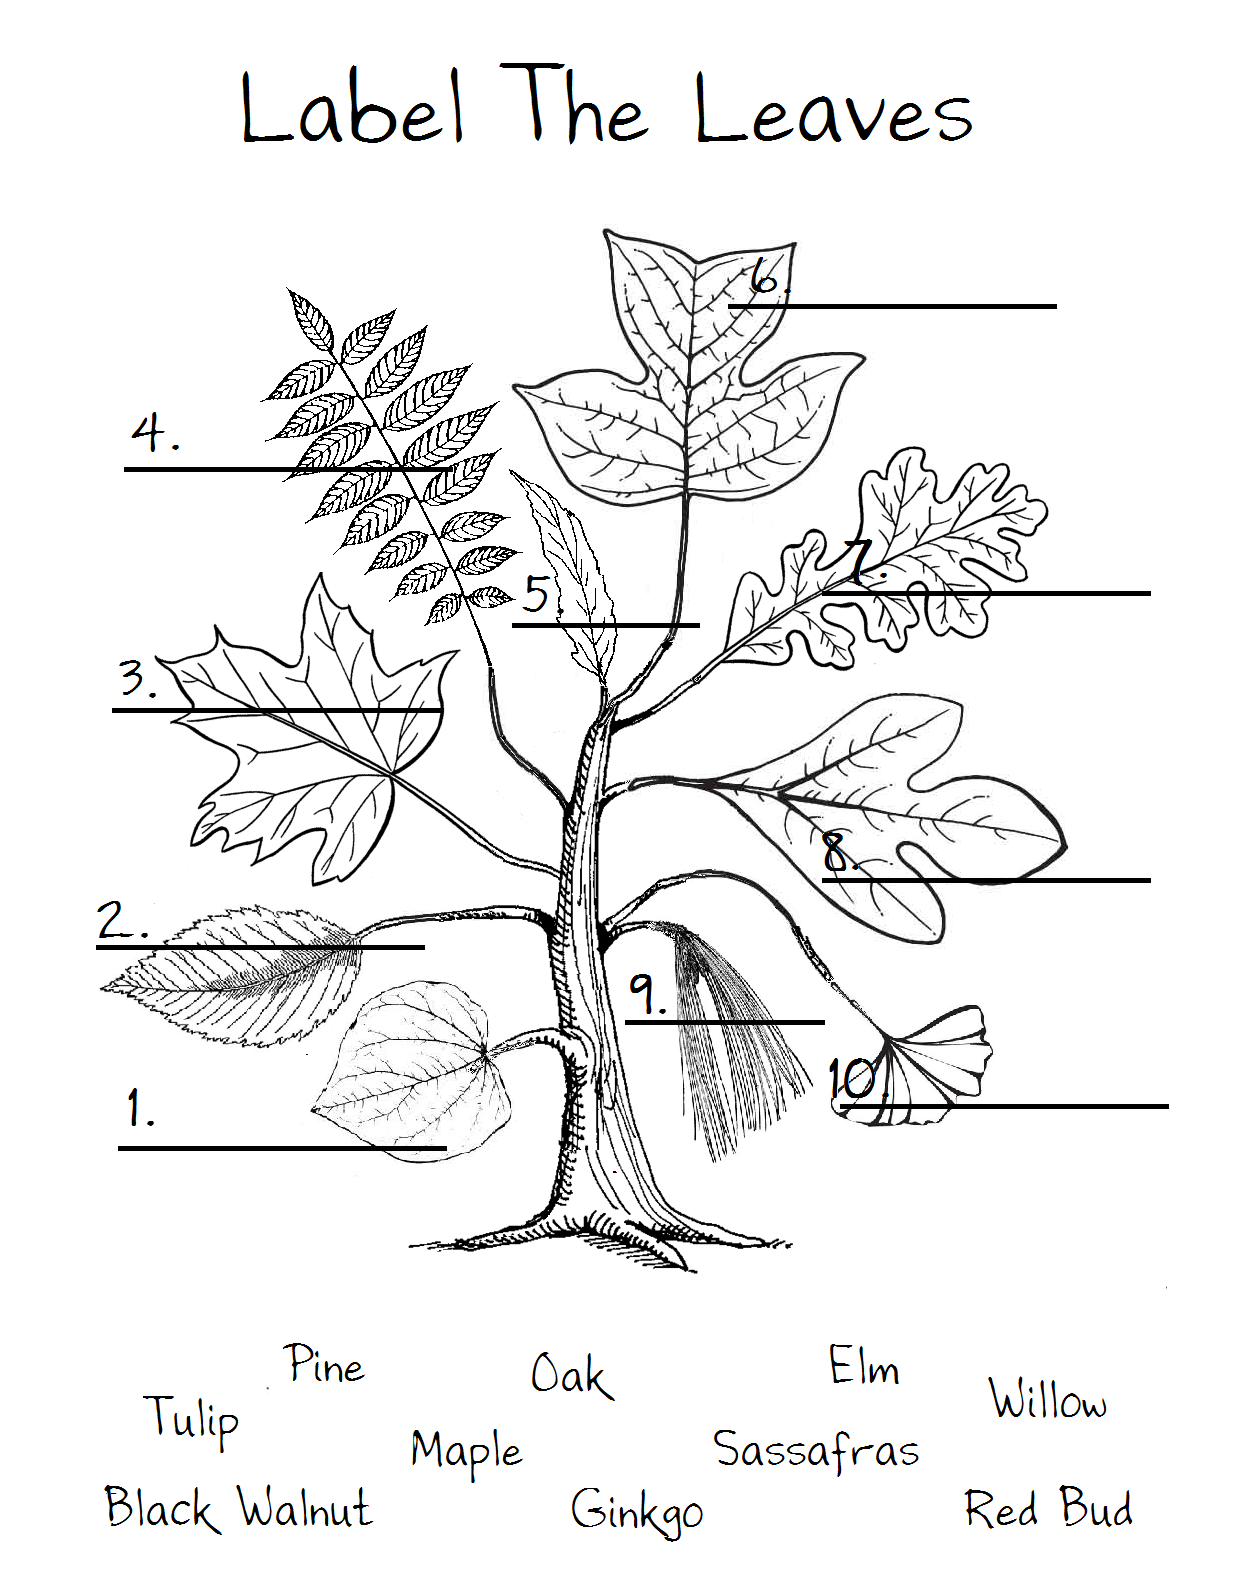 1 Red Bud 2 Elm 3 Maple 4 Black Walnut 5 Willow 6 Tulip 7 Oak 8 Sassafras 9 Pine 10